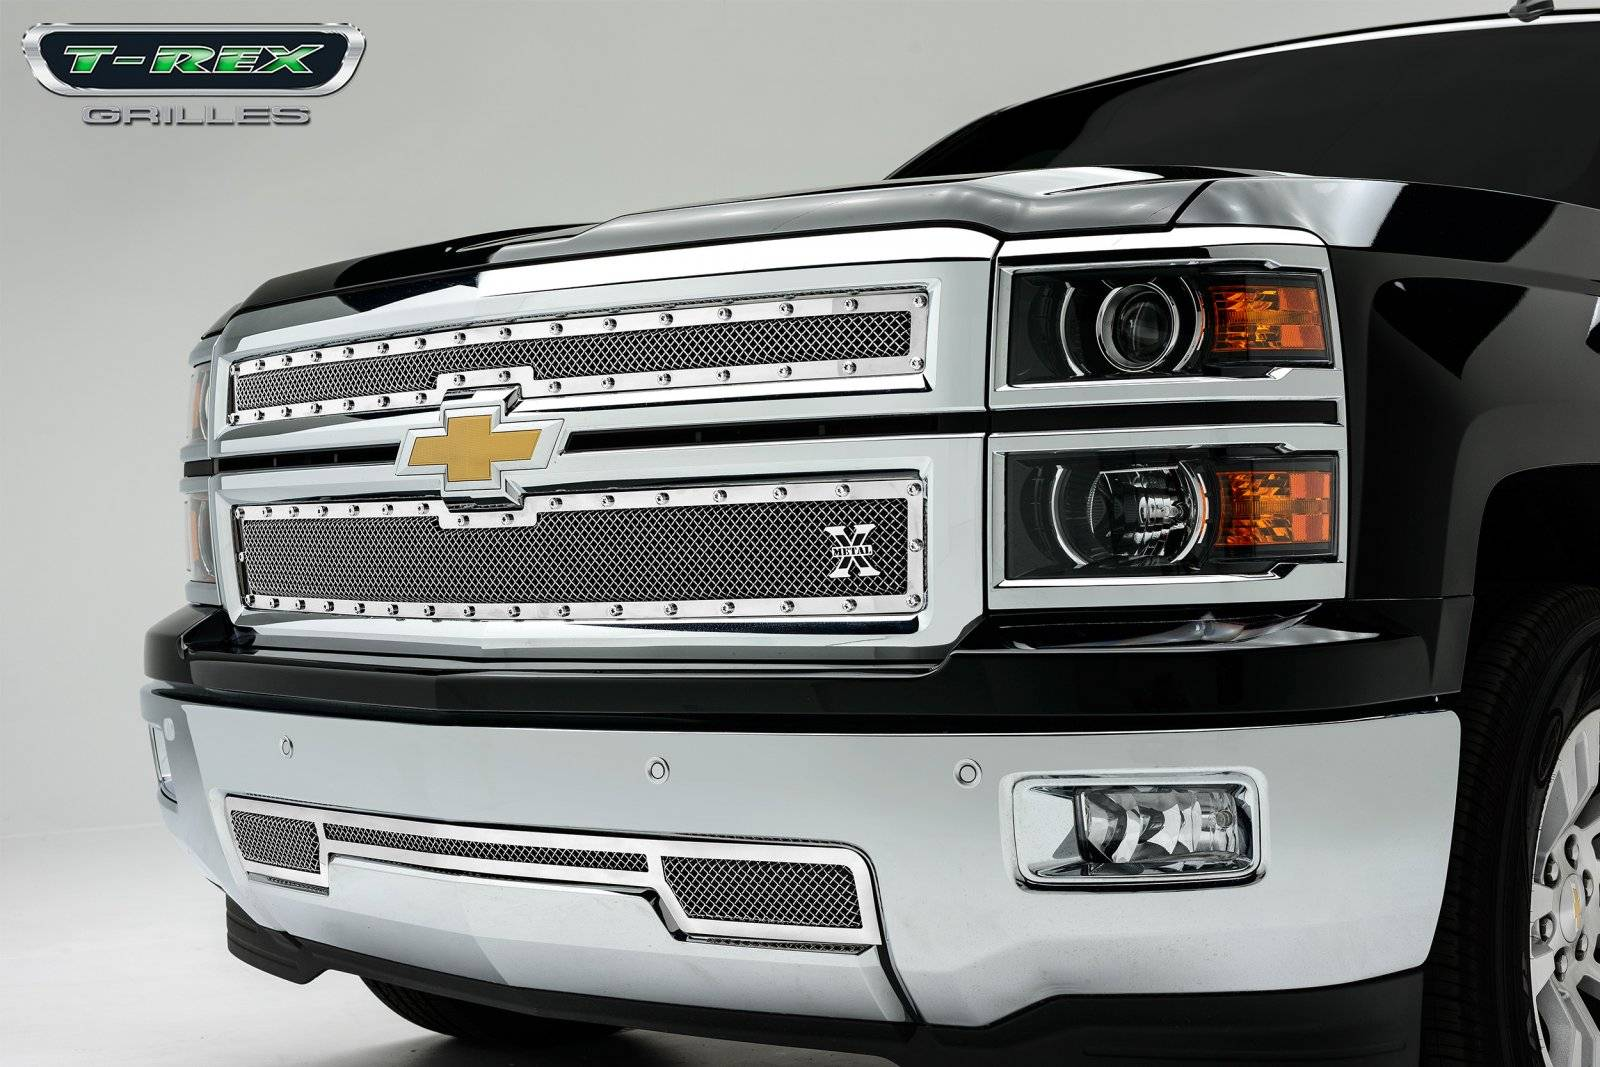 T-REX Grilles - Chevrolet Silverado X-METAL Series - Studded Main Grille - Polished SS - 2 Pc Style - Pt # 6711170